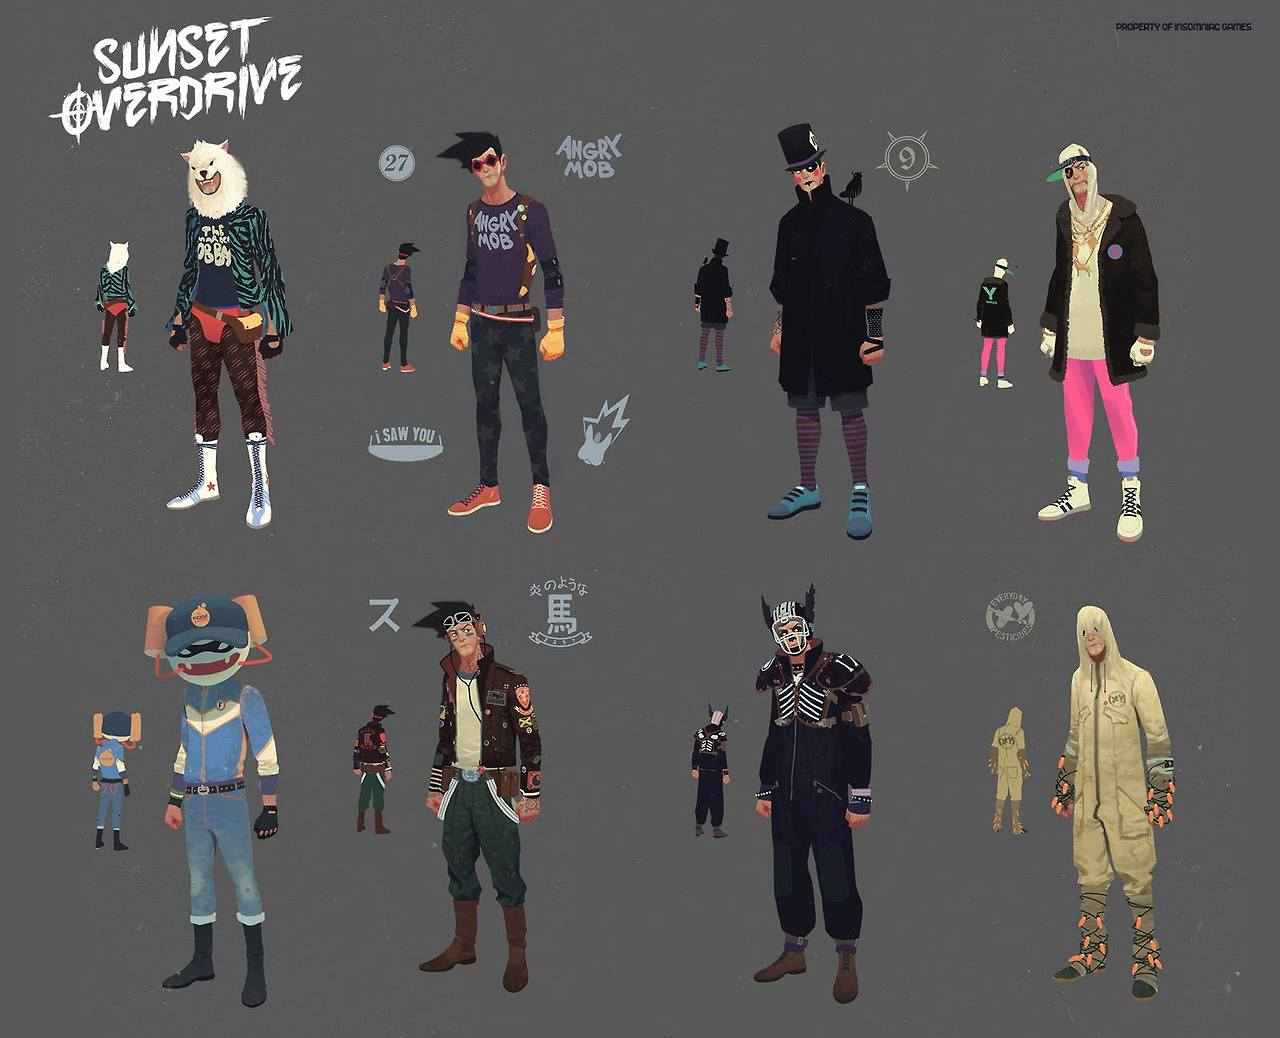 Sunset Overdrive Concept Art and Illustration by Vasili Zorin